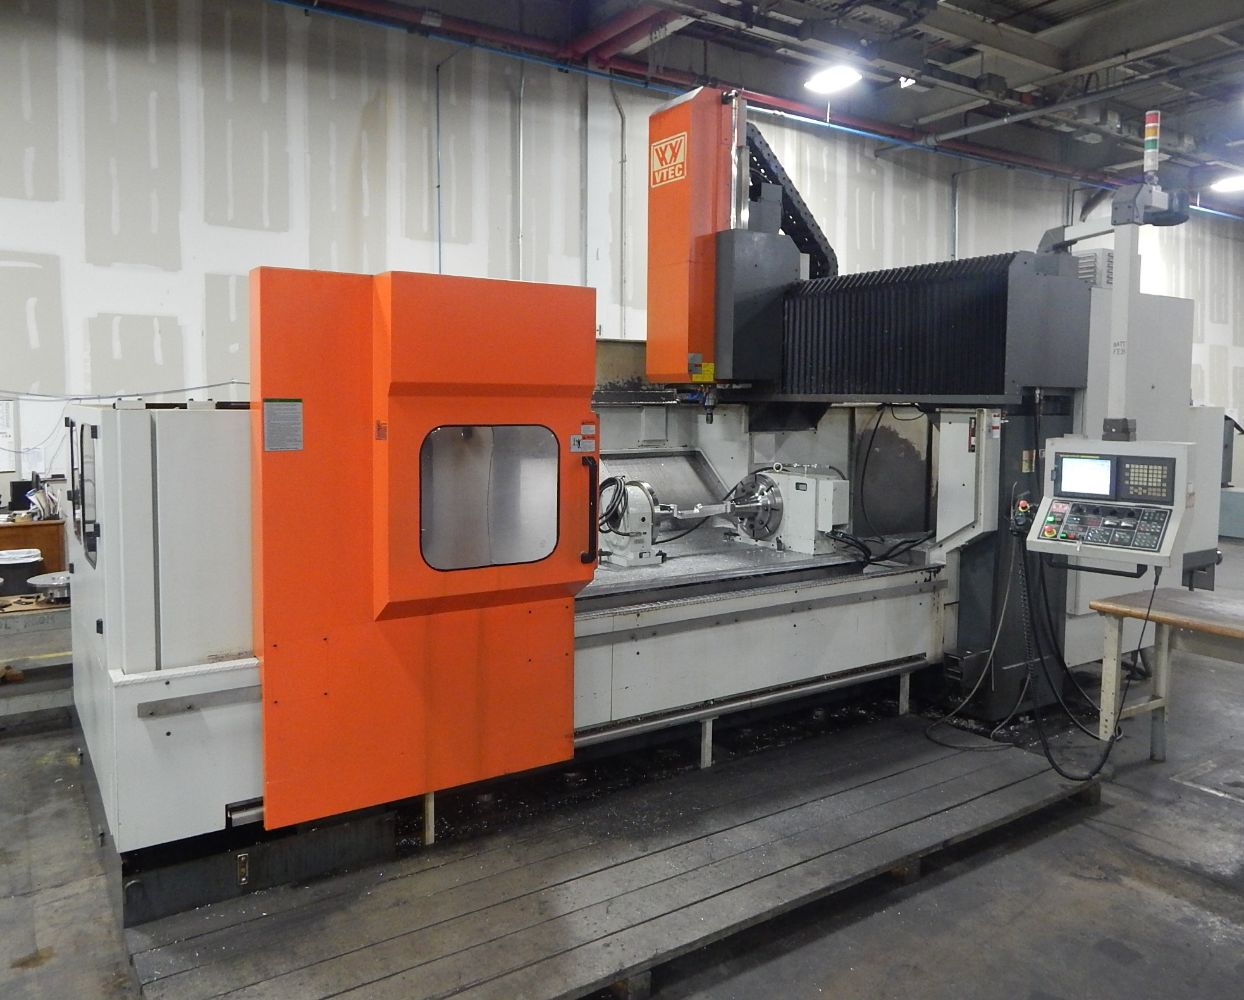 Owner Retiring in Conjunction with Secured Creditor – U.S. Aeroteam, Inc. Well Maintained CNC & Toolroom Machinery